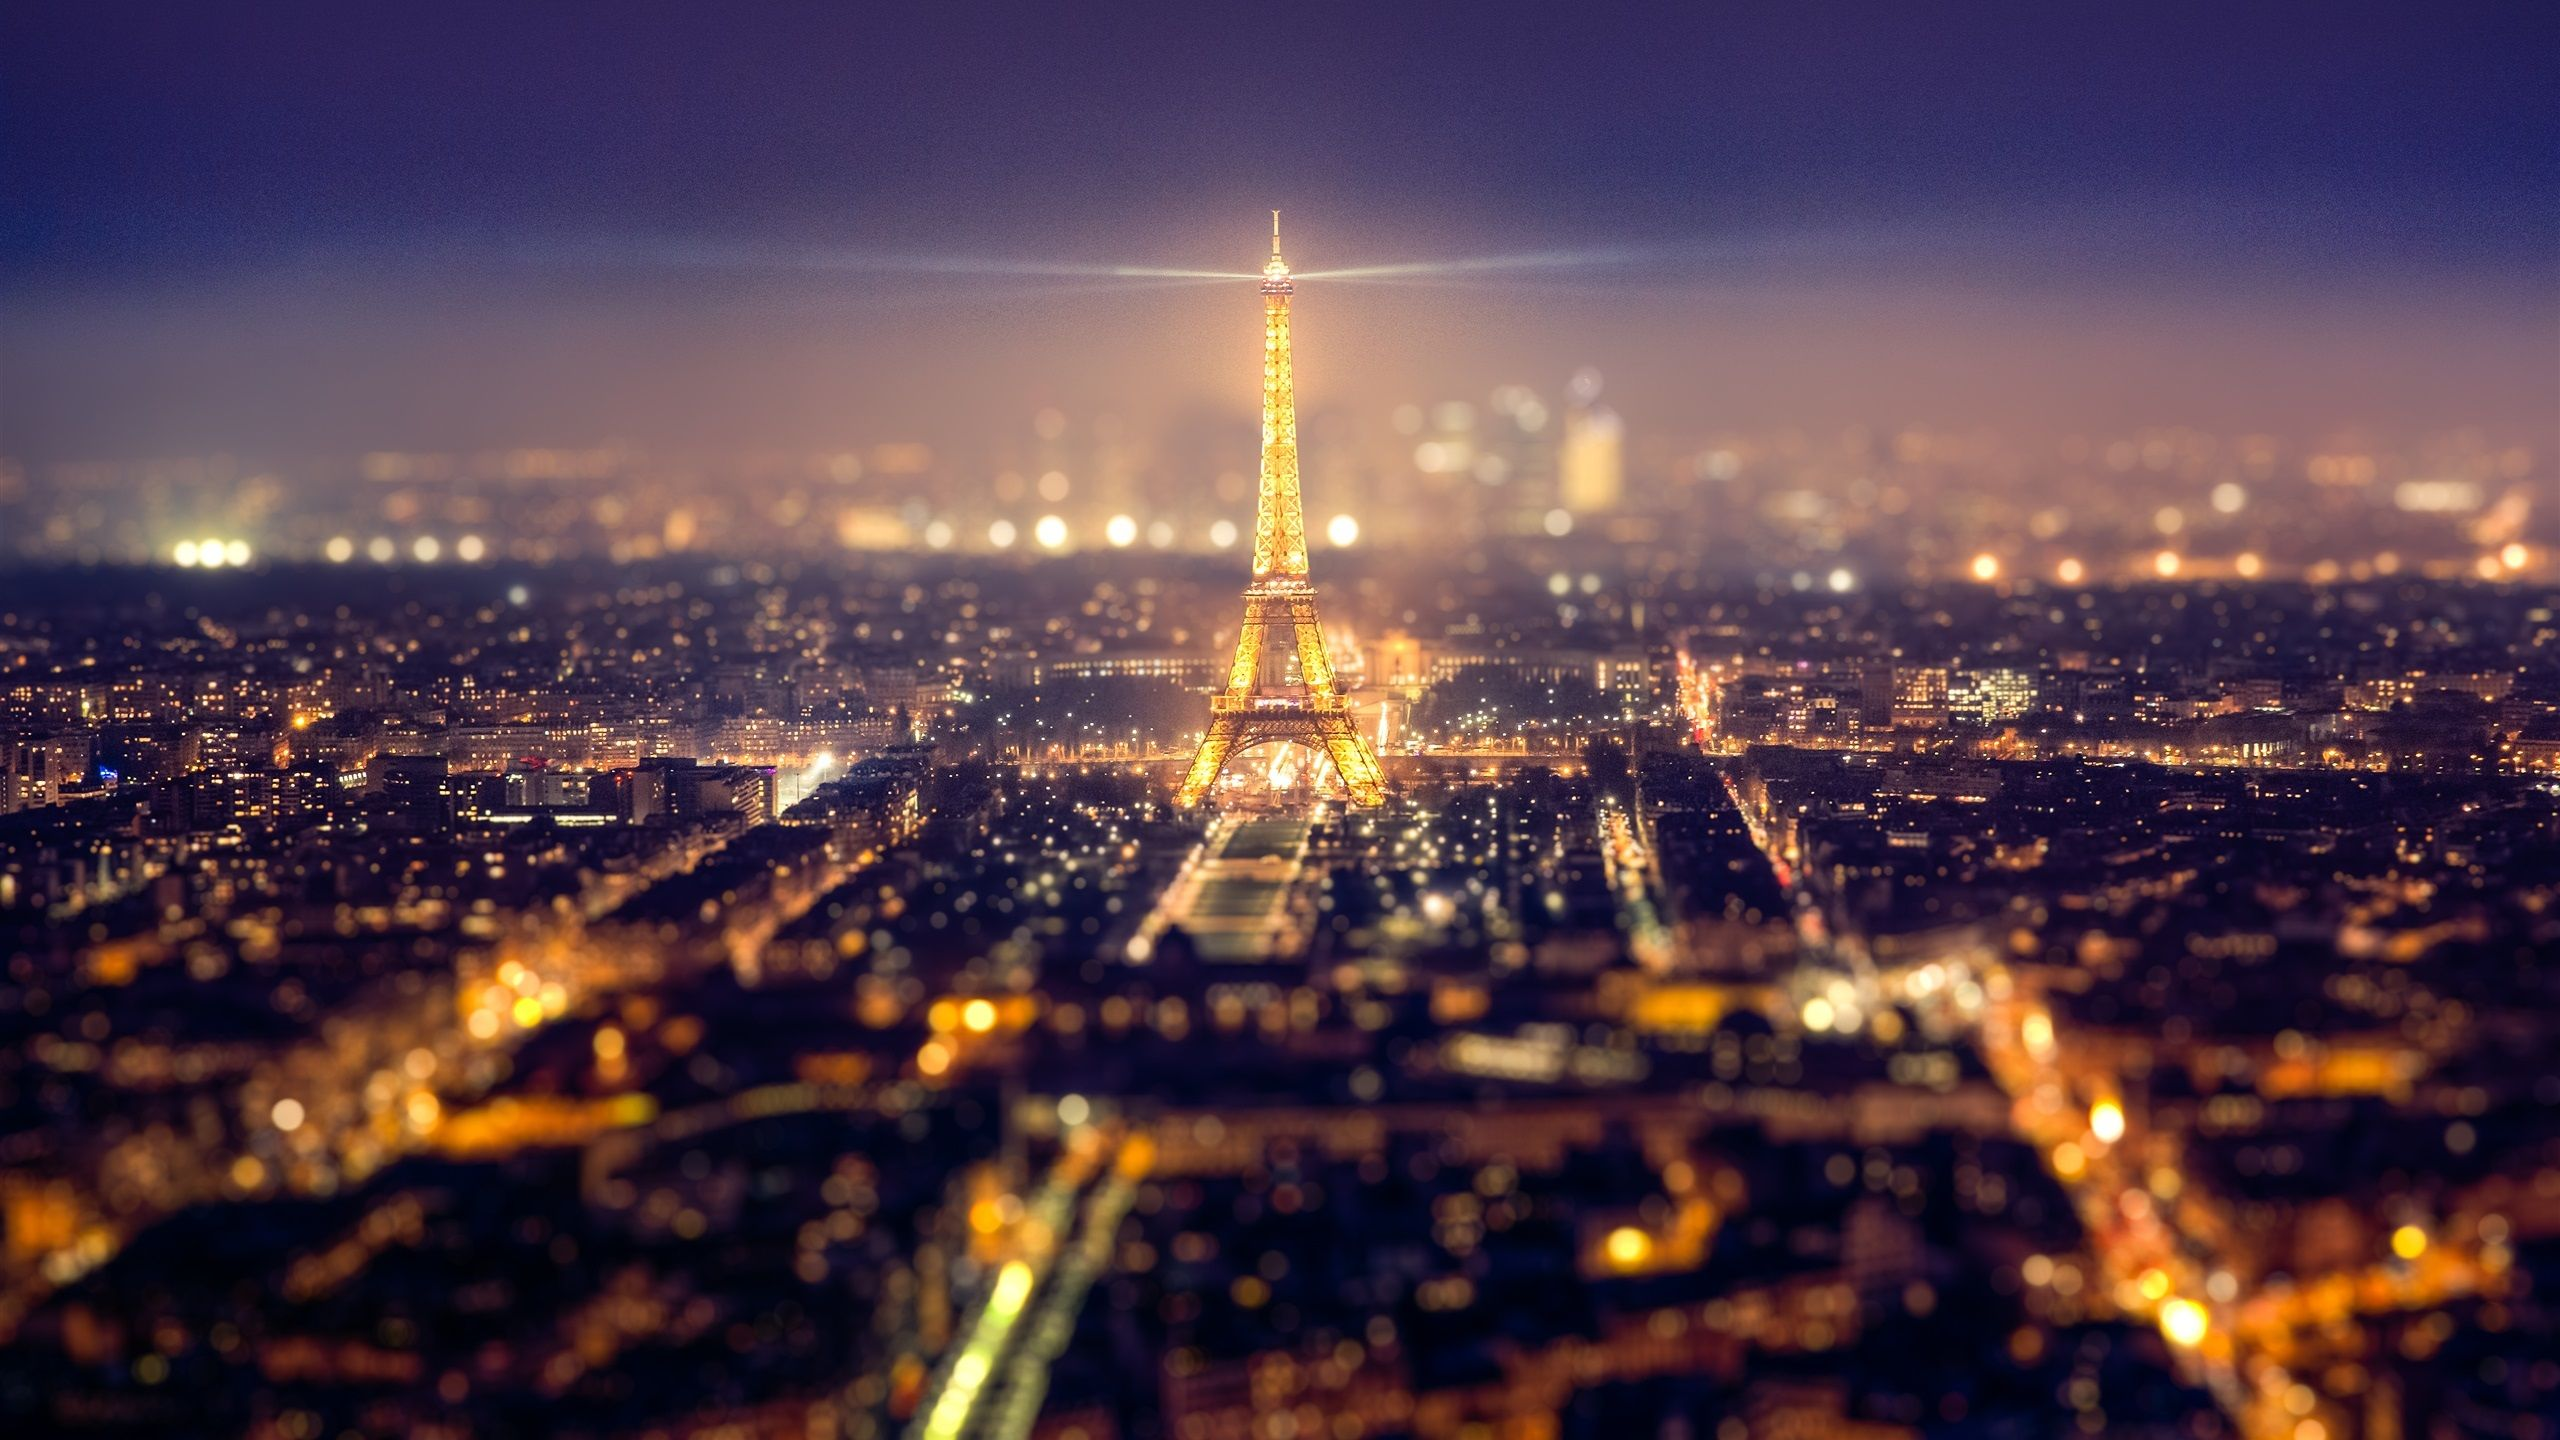 France Night Wallpapers Top Free France Night Backgrounds Wallpaperaccess